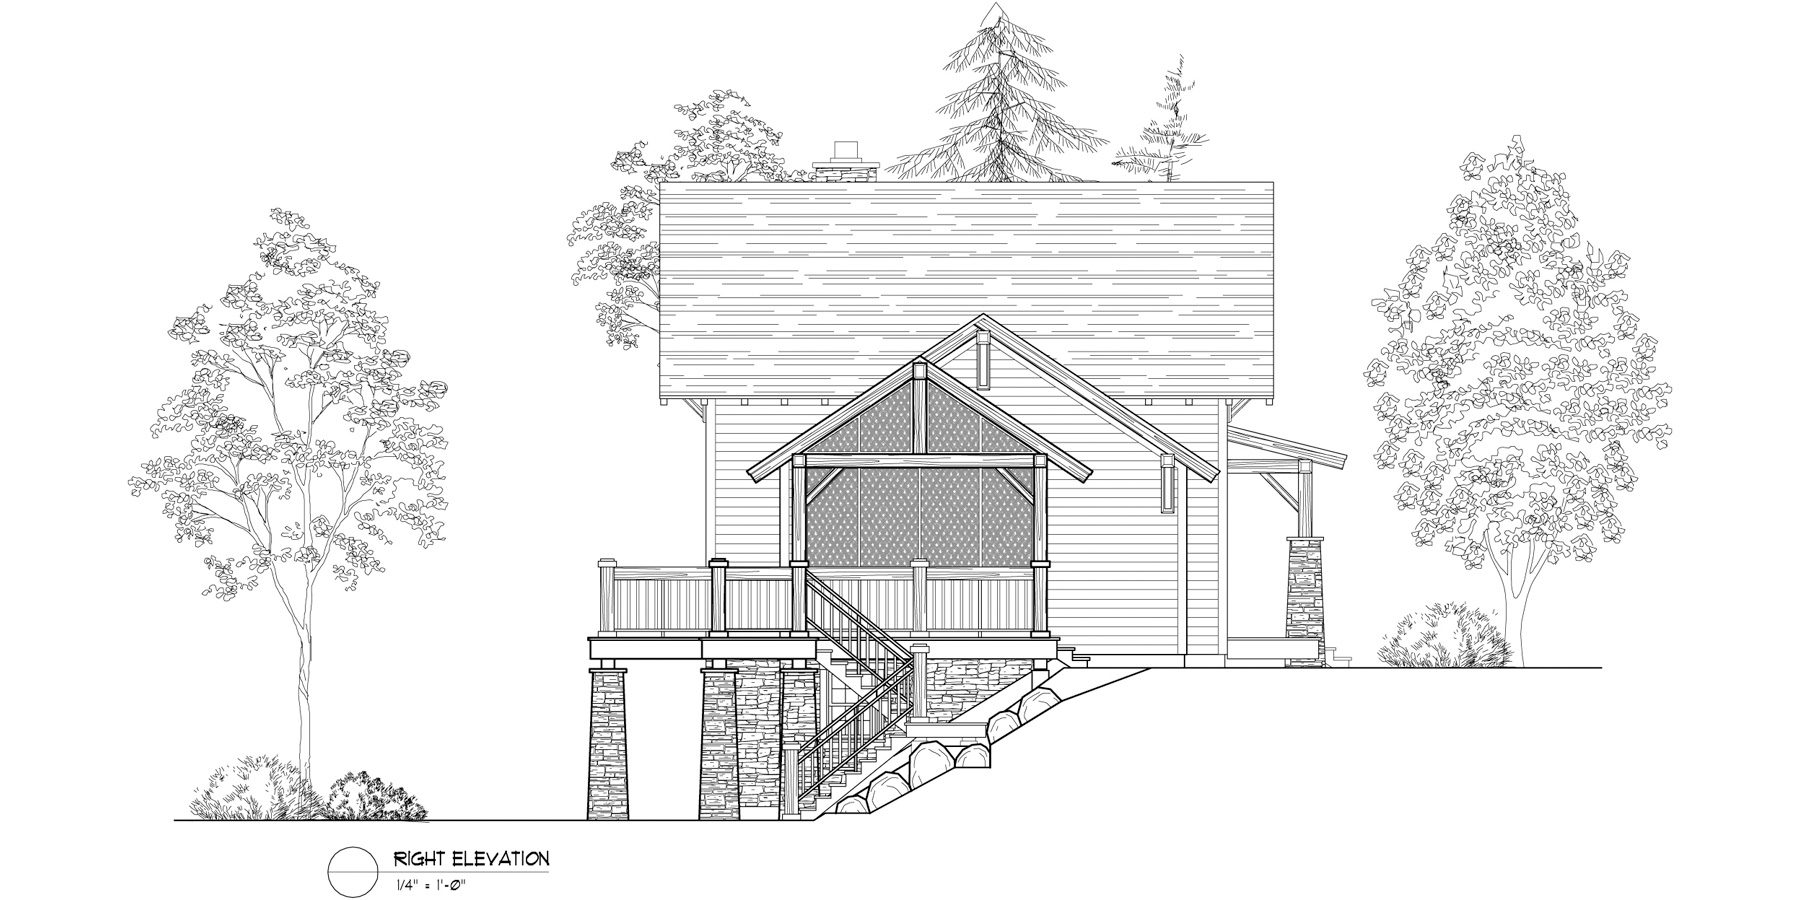 Normerica Timber Frames, House Plan, The Lanark 3522, Right Elevation